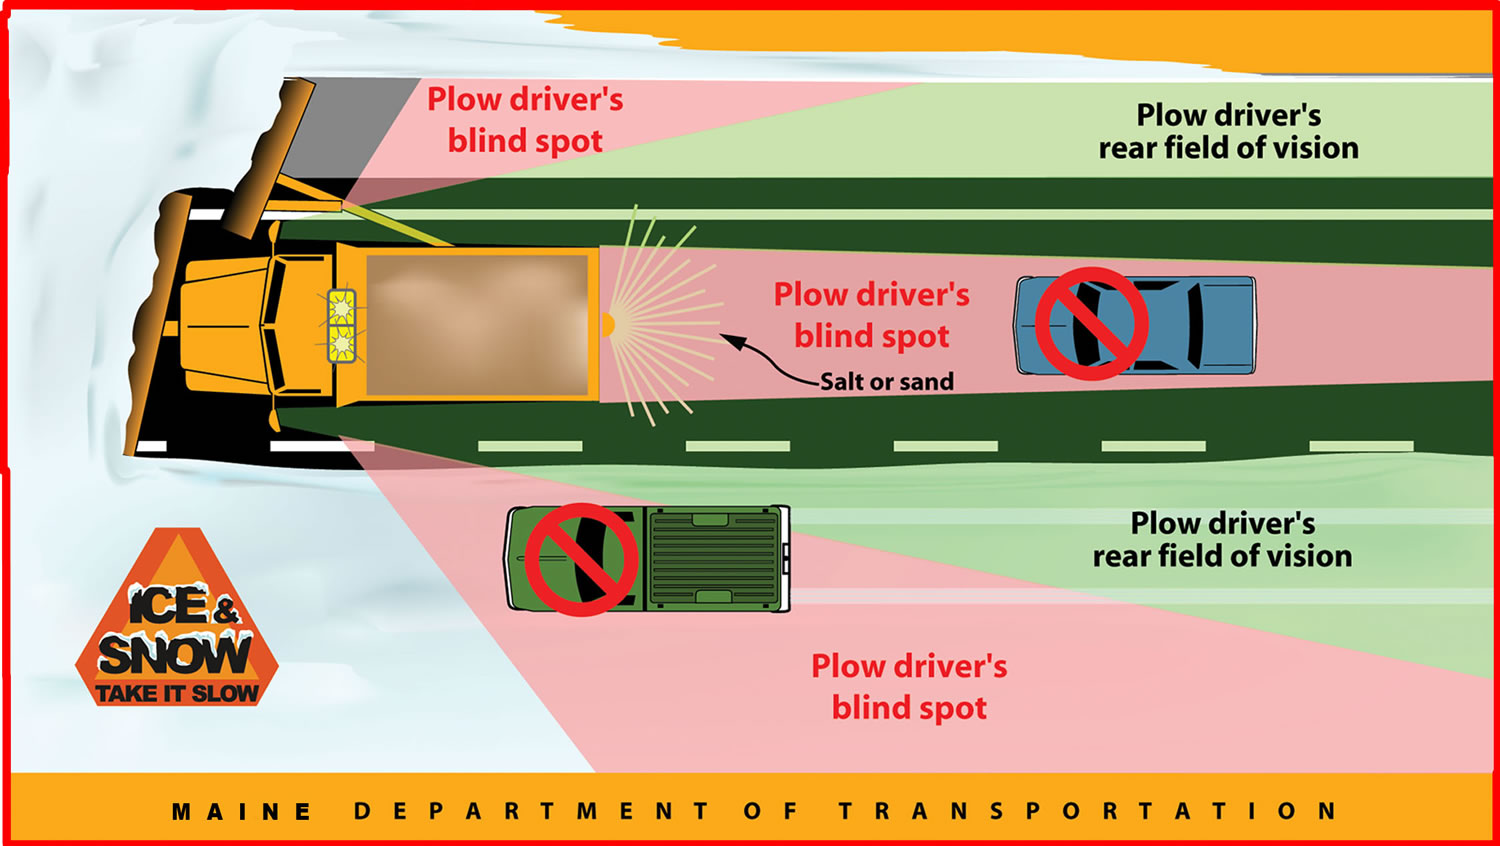 View a graphic showing the blind spot of a typical snow plow jpeg